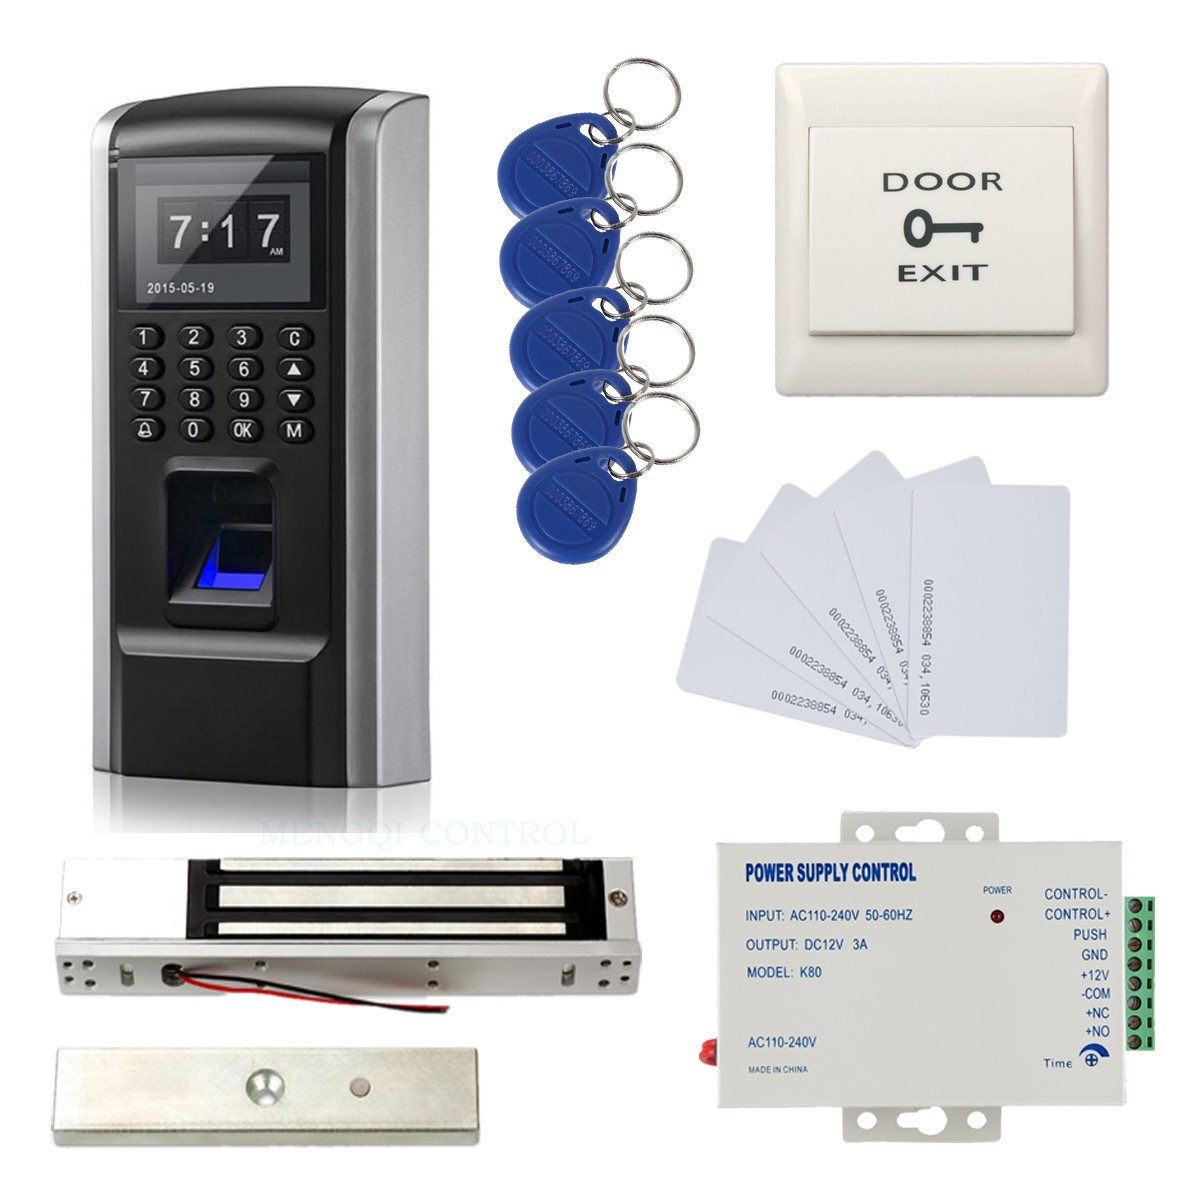 Full Kits Biometric Fingerprint RFID Password Access Control Systems + 600lbs Force Electric EM Magnetic Lock +110V Power Supply+10 Cards and Key Fobs by MENGQI-CONTROL